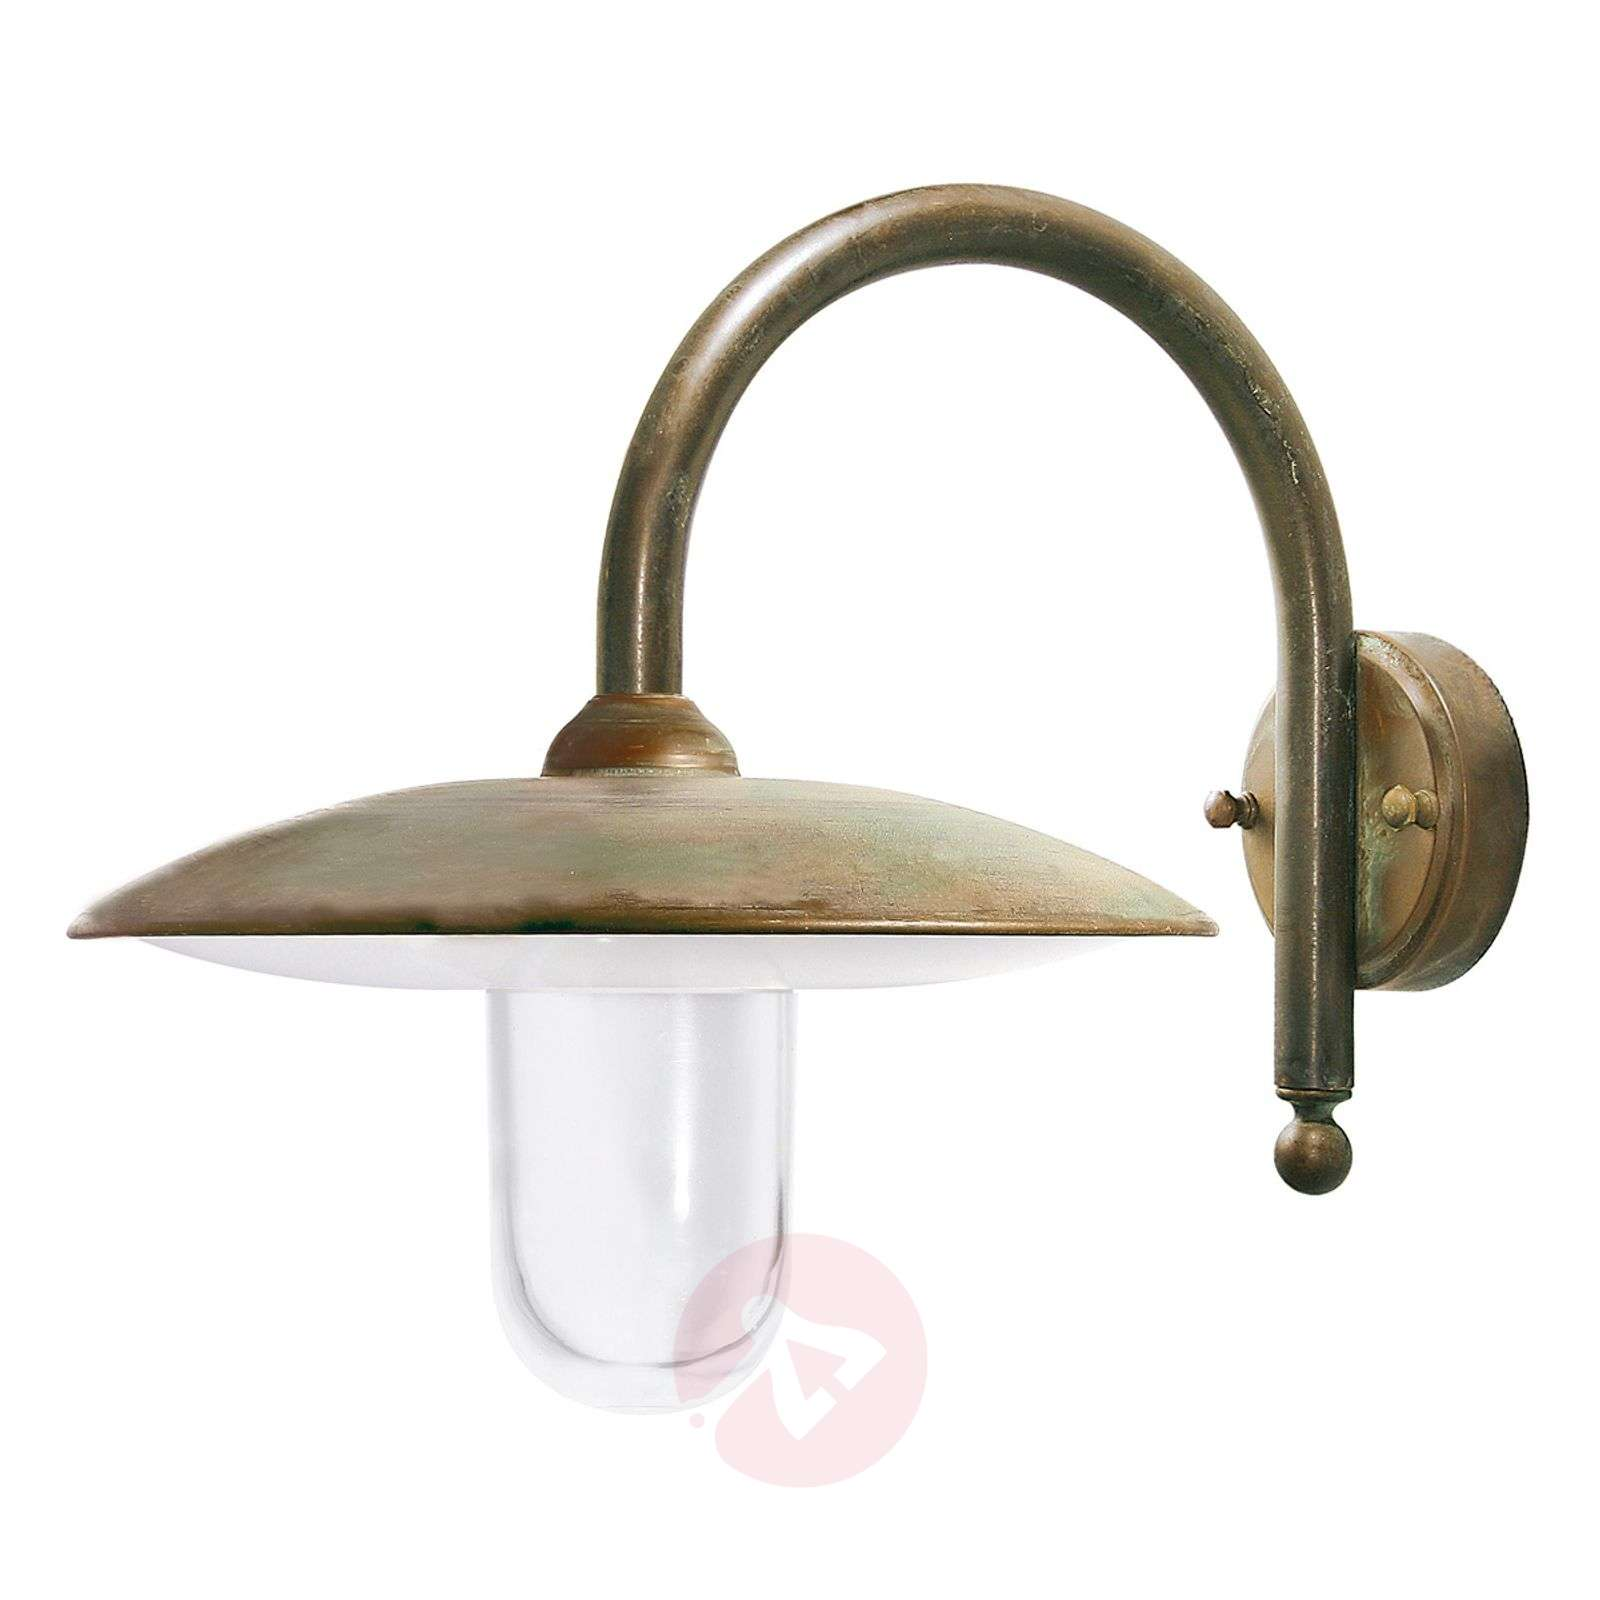 Stylish antique Casale outdoor wall light-6515371-01